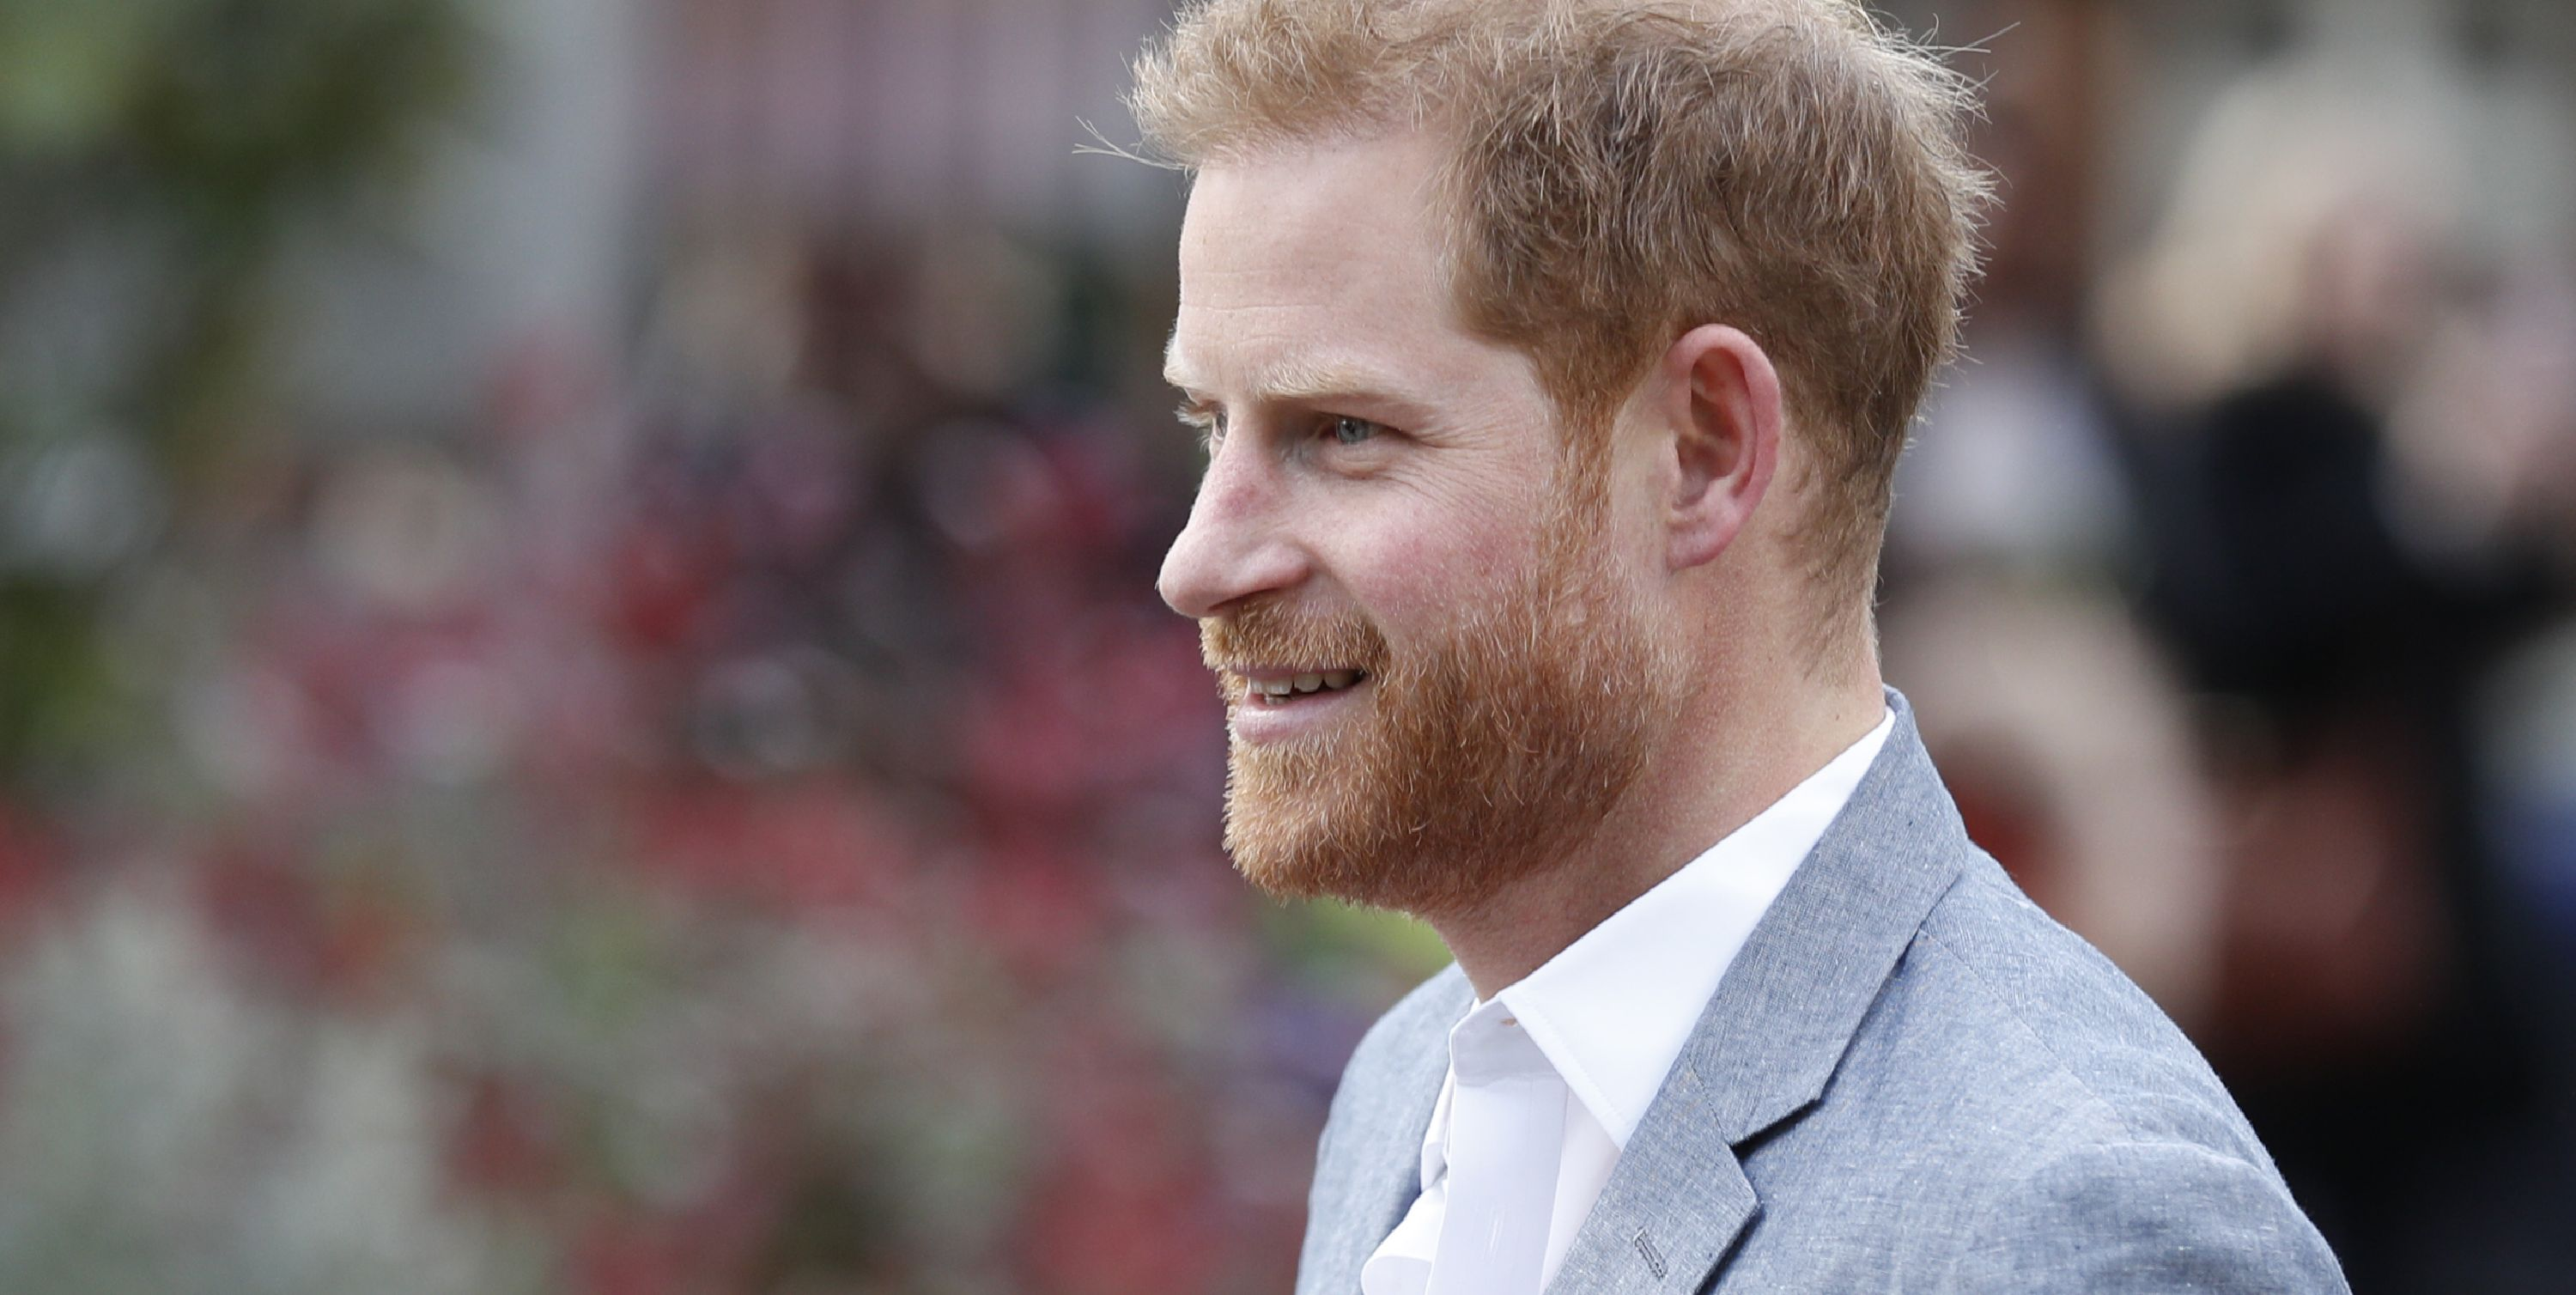 principe-harry-royal-family-news